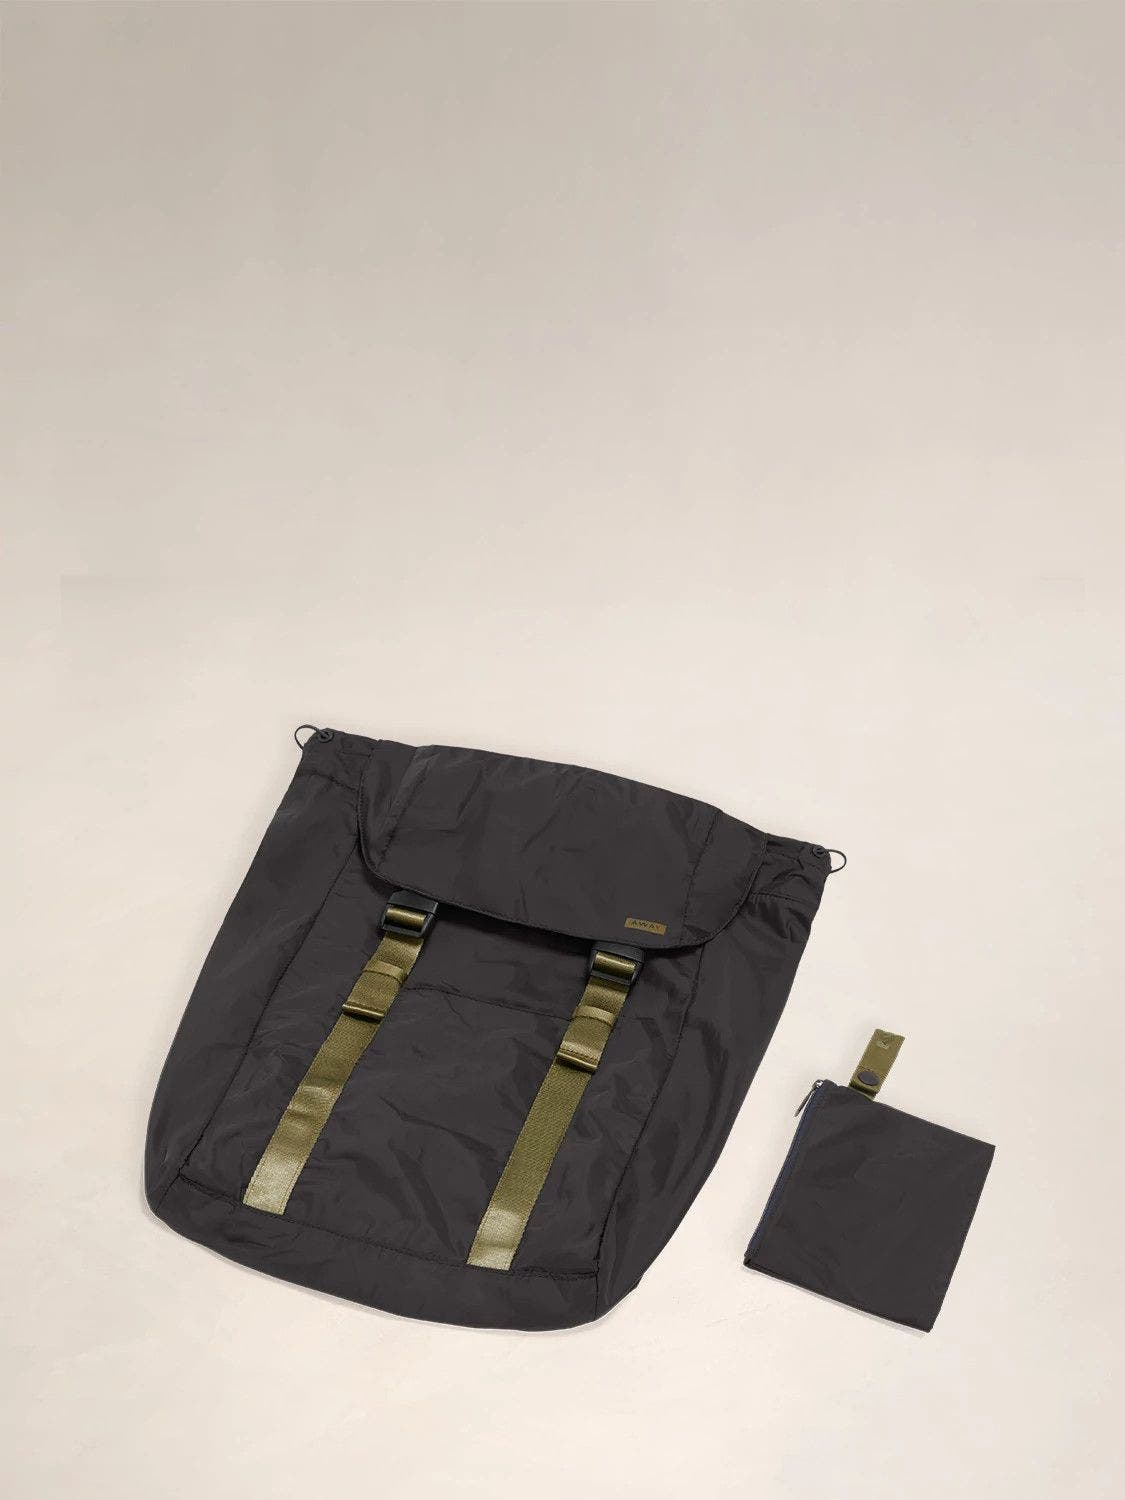 Flat view of the Away packable backpack in the color black.